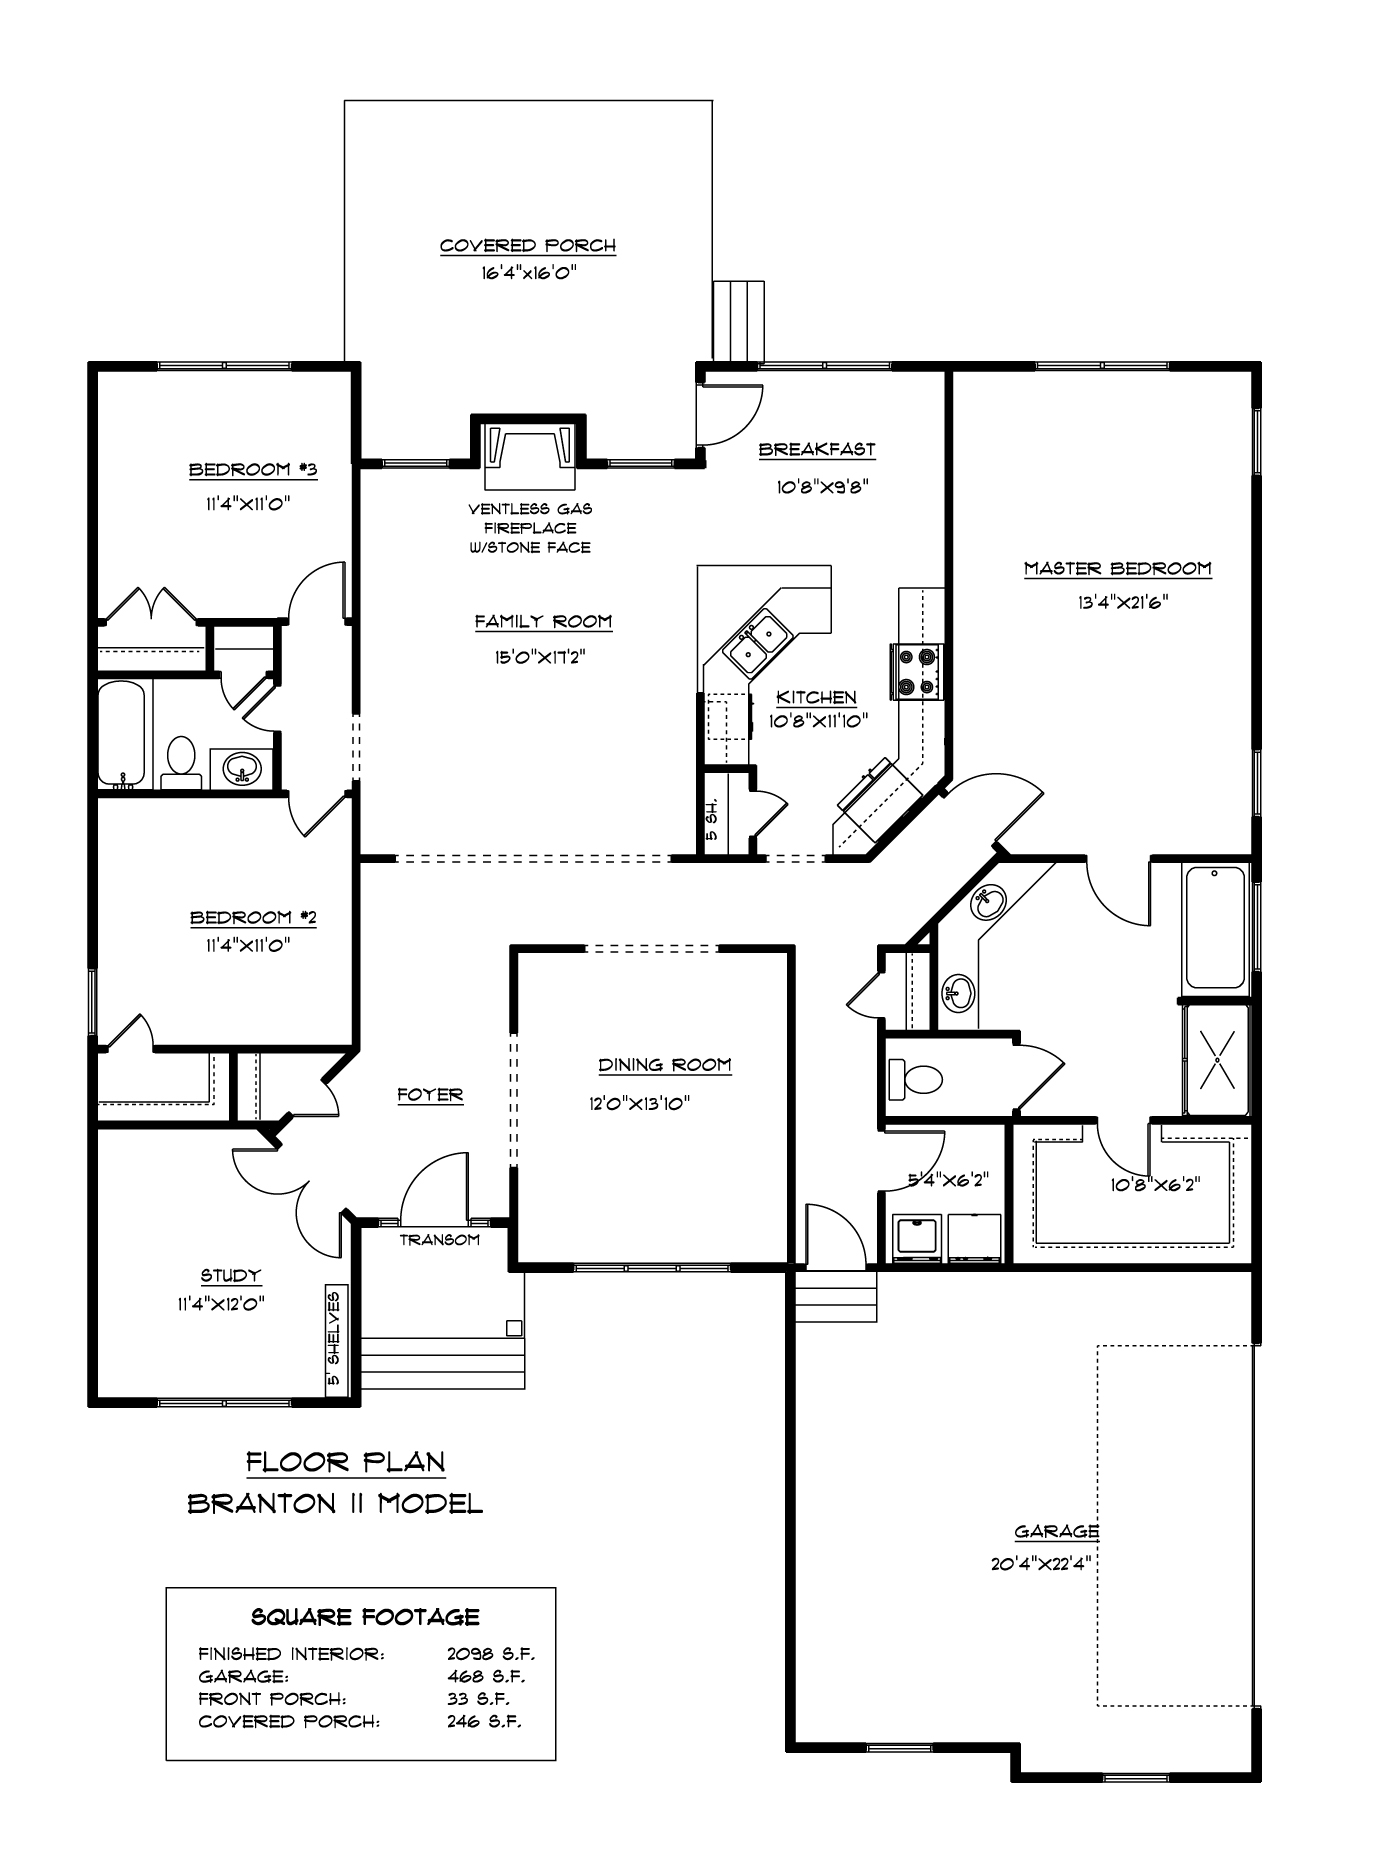 Branton II Floor Plan AB Homes Suffolk VA